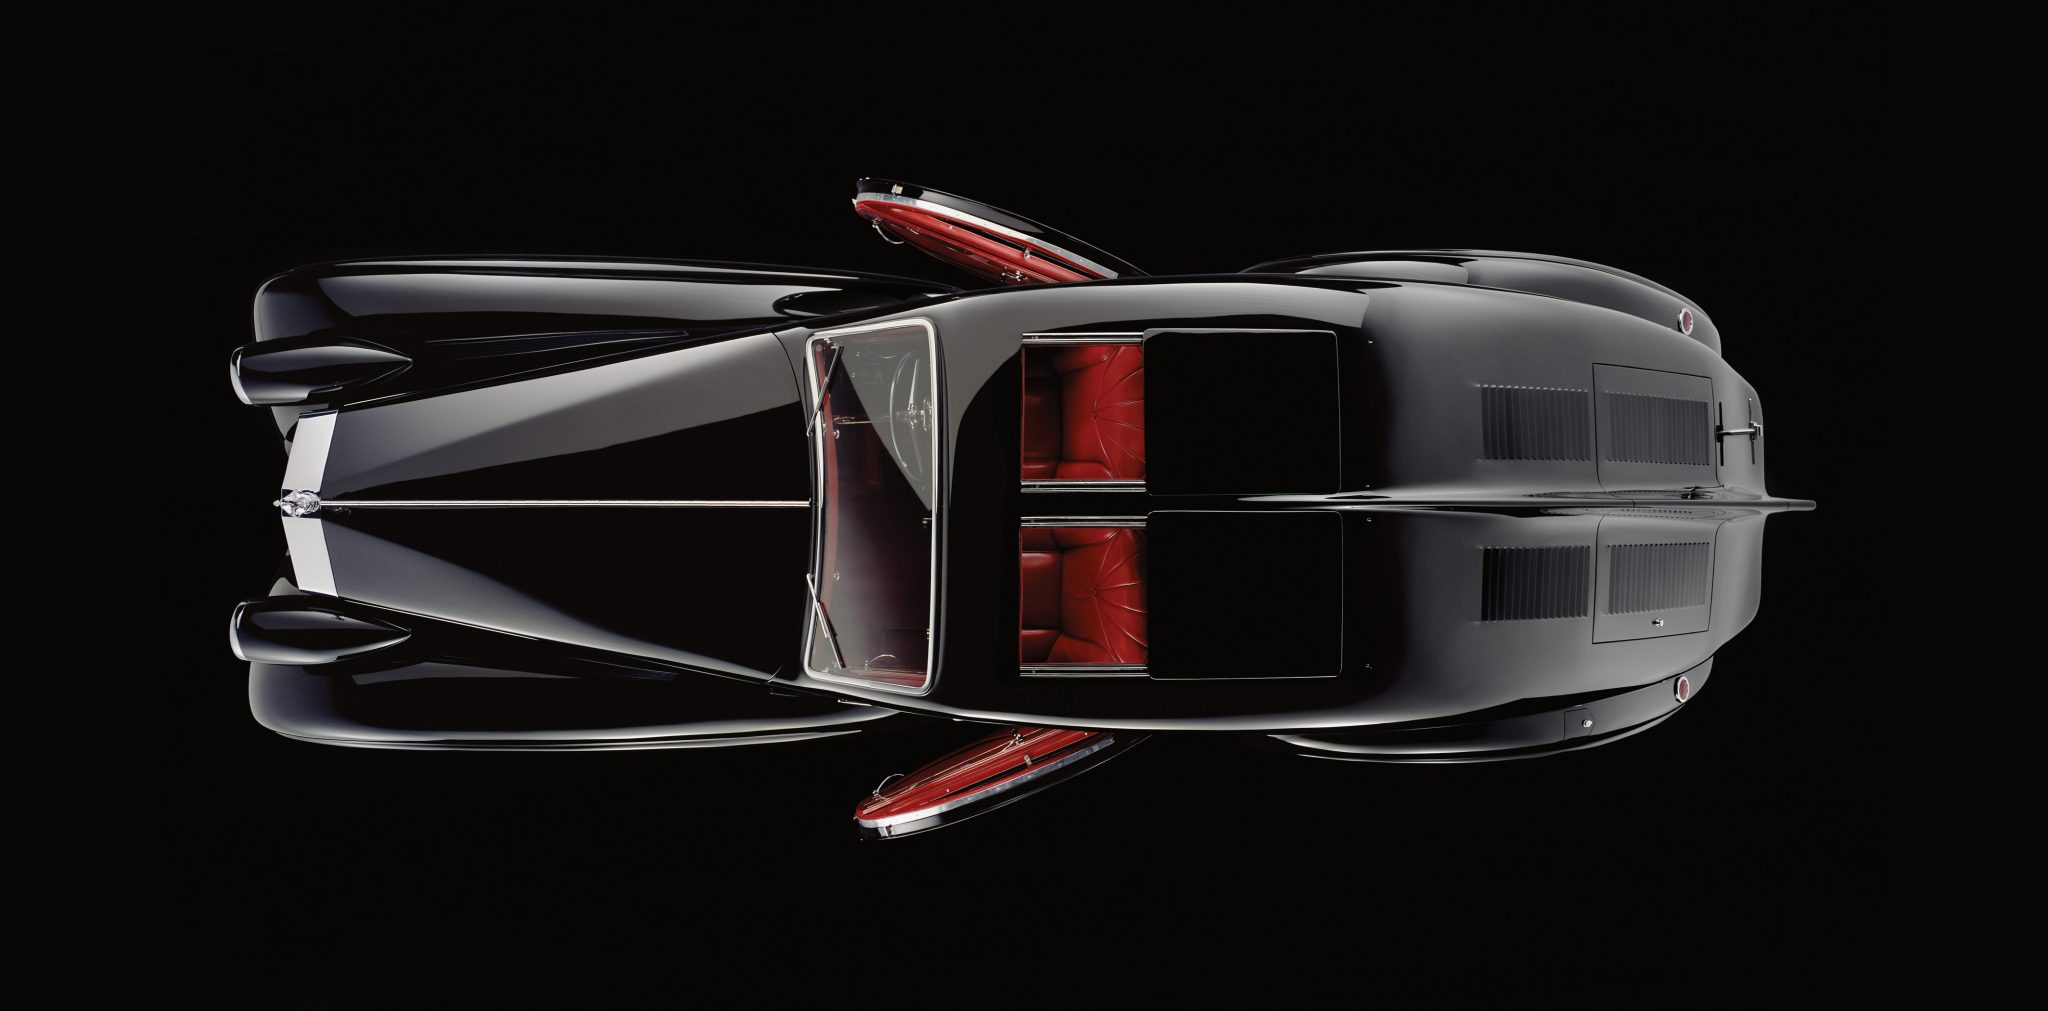 Rolls-Royce Phantom 1 Jonckheere Coupe Top Down View